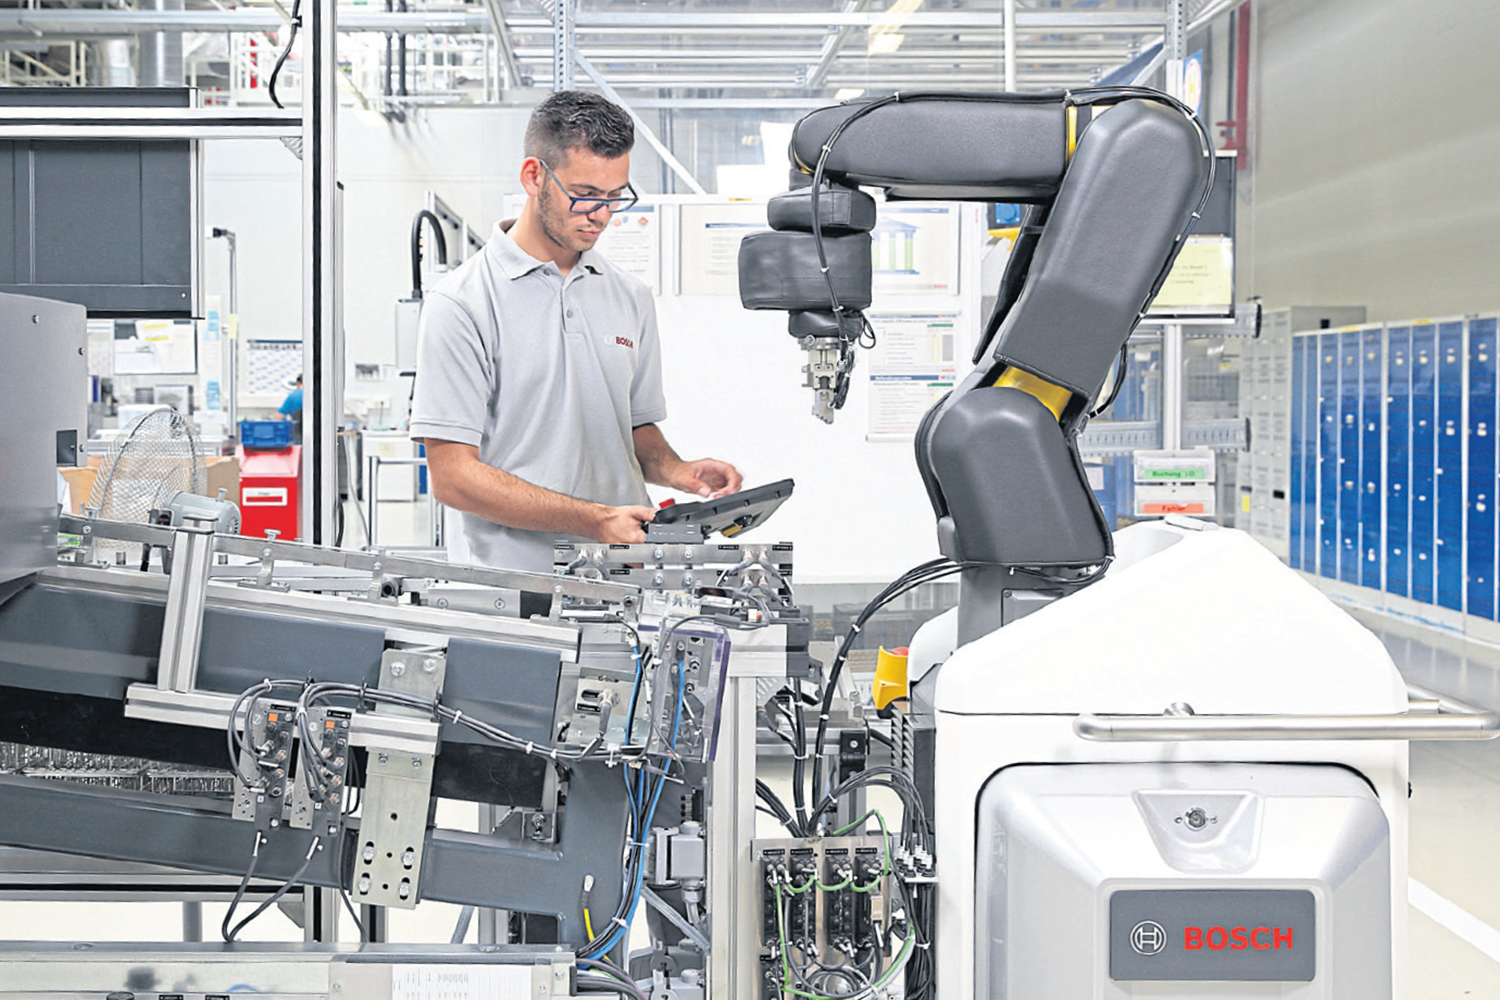 A worker is controlling Robert Bosch's APAS robot during a task.